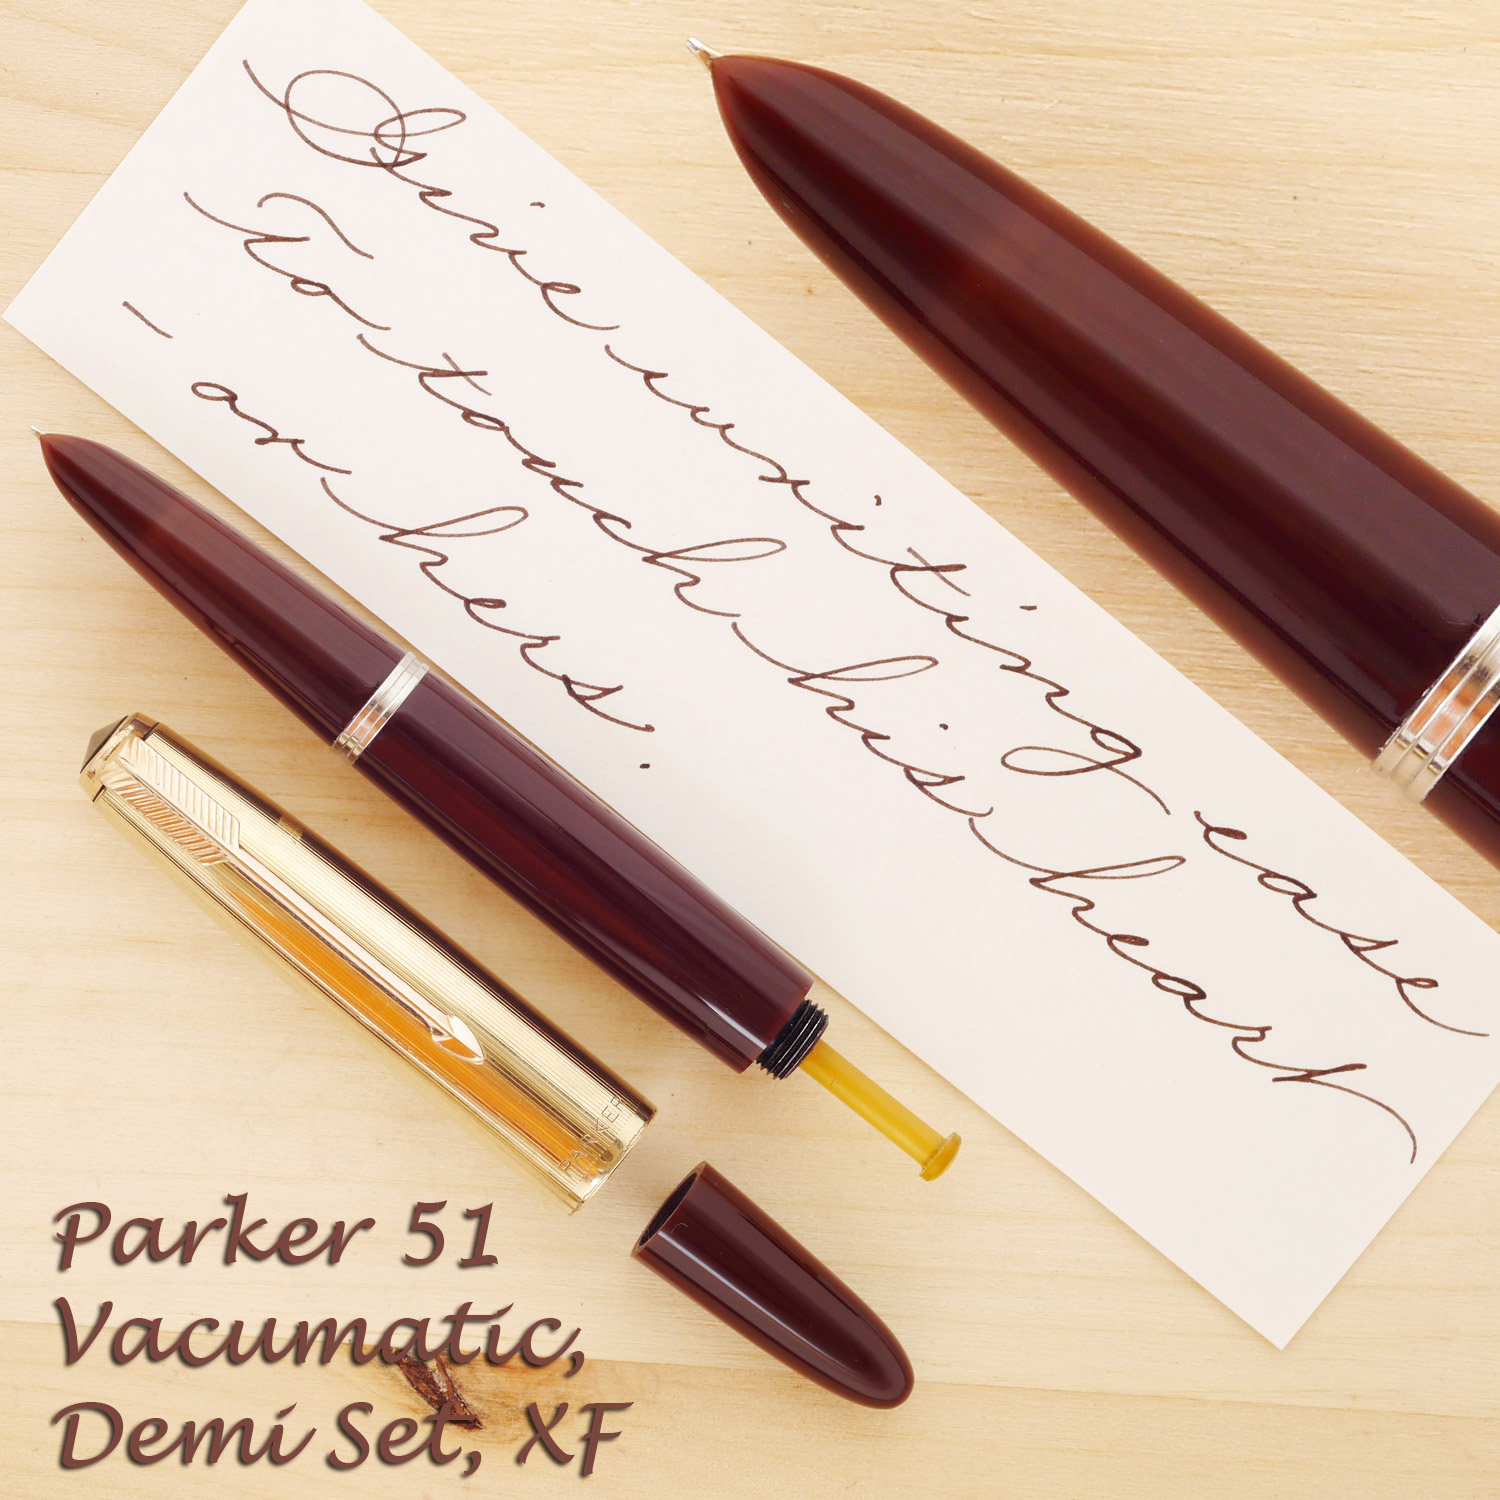 Parker 51 Vacumatic Demi Cordovan Brown Set, XF, with the cap and blind cap off